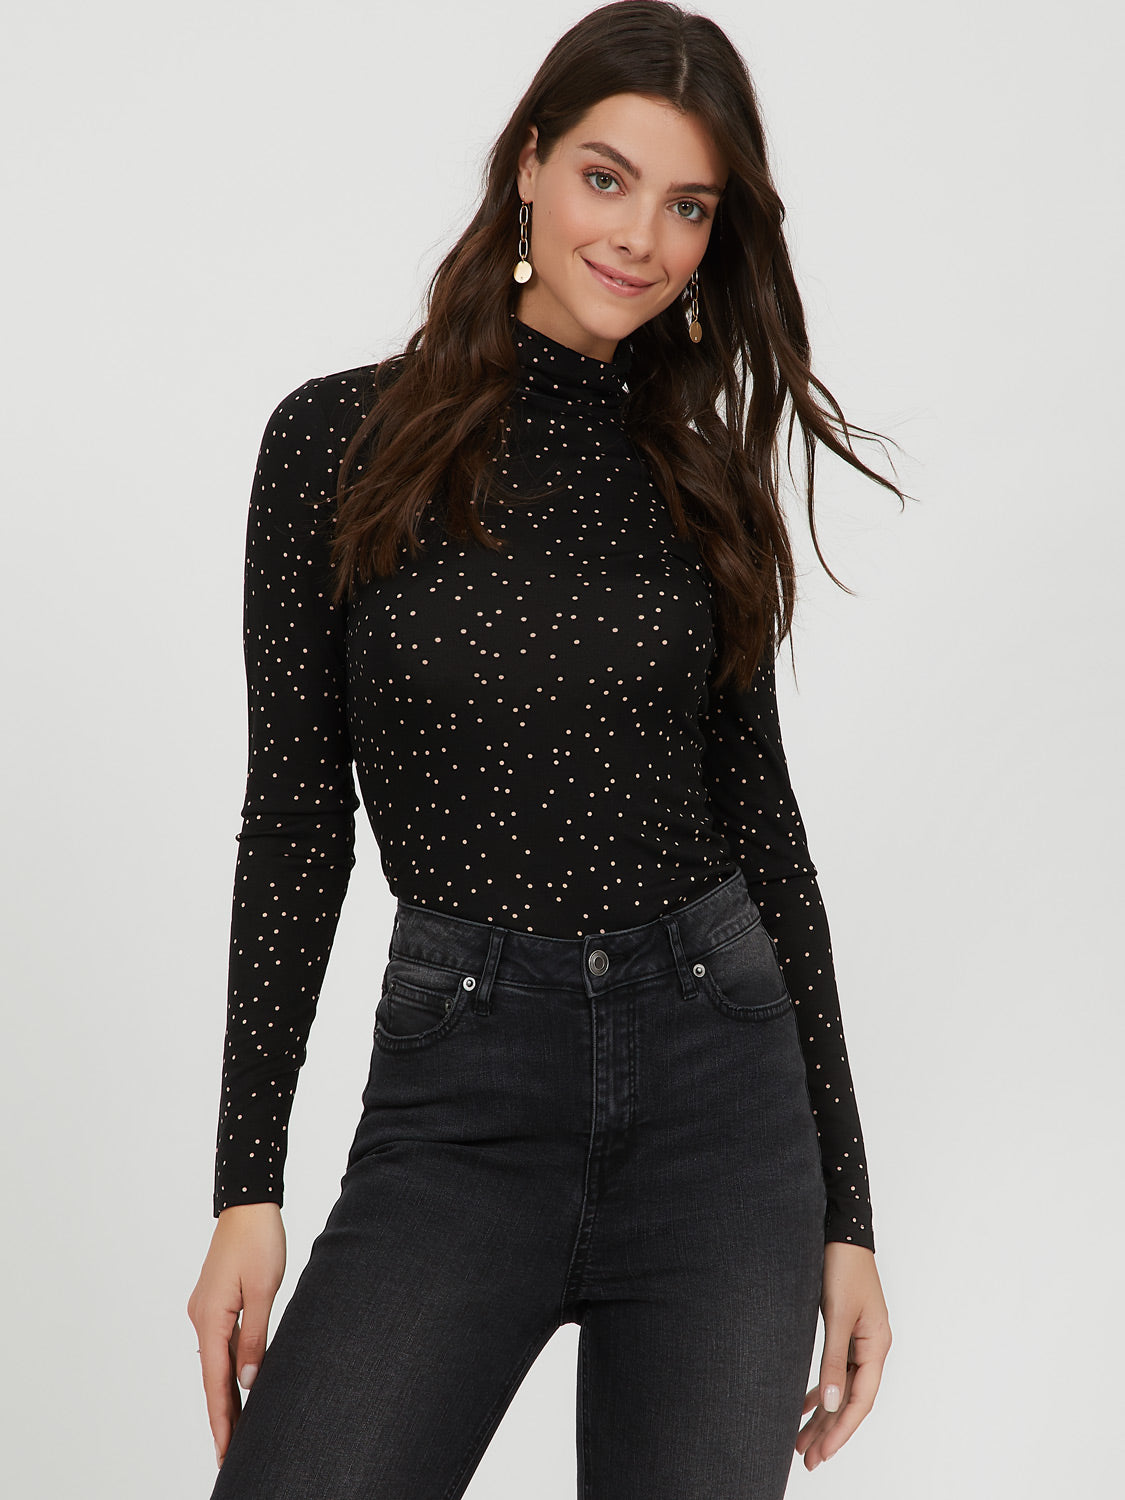 Scattered Dots Knit Turtleneck Top